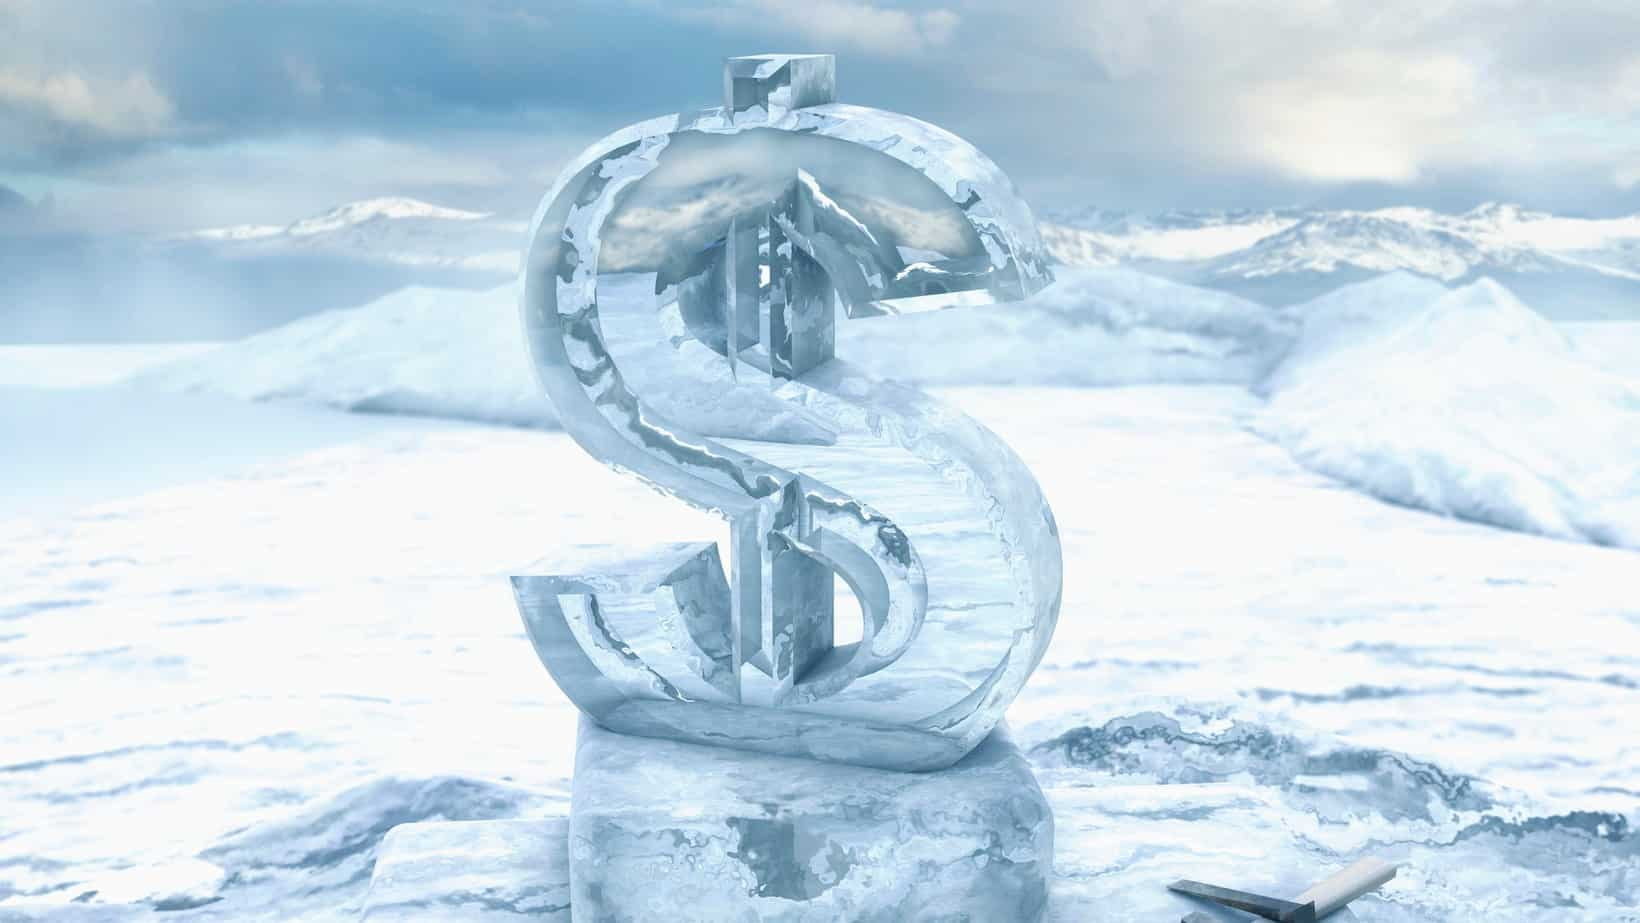 A dollar sign embedded in ice, indicating a share price freeze or trading halt